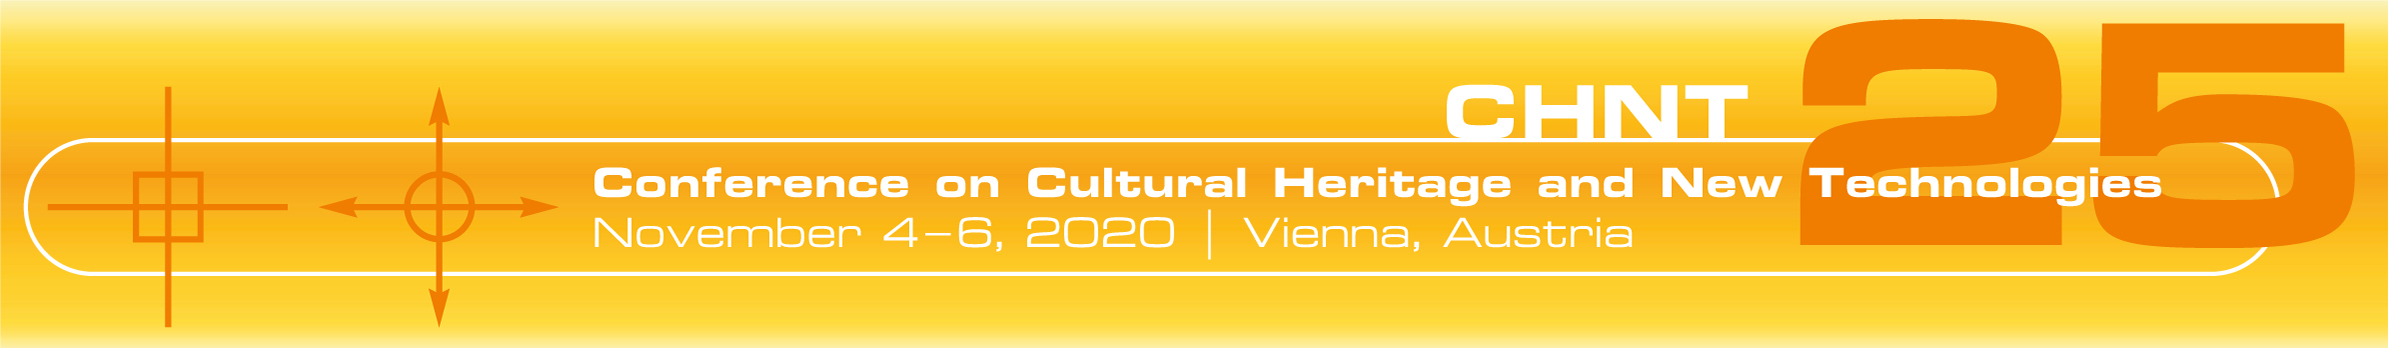 4 - 6 Novembre 2020 Vienna -  Conference on Cultural Heritage and New Technologies CHNT 25